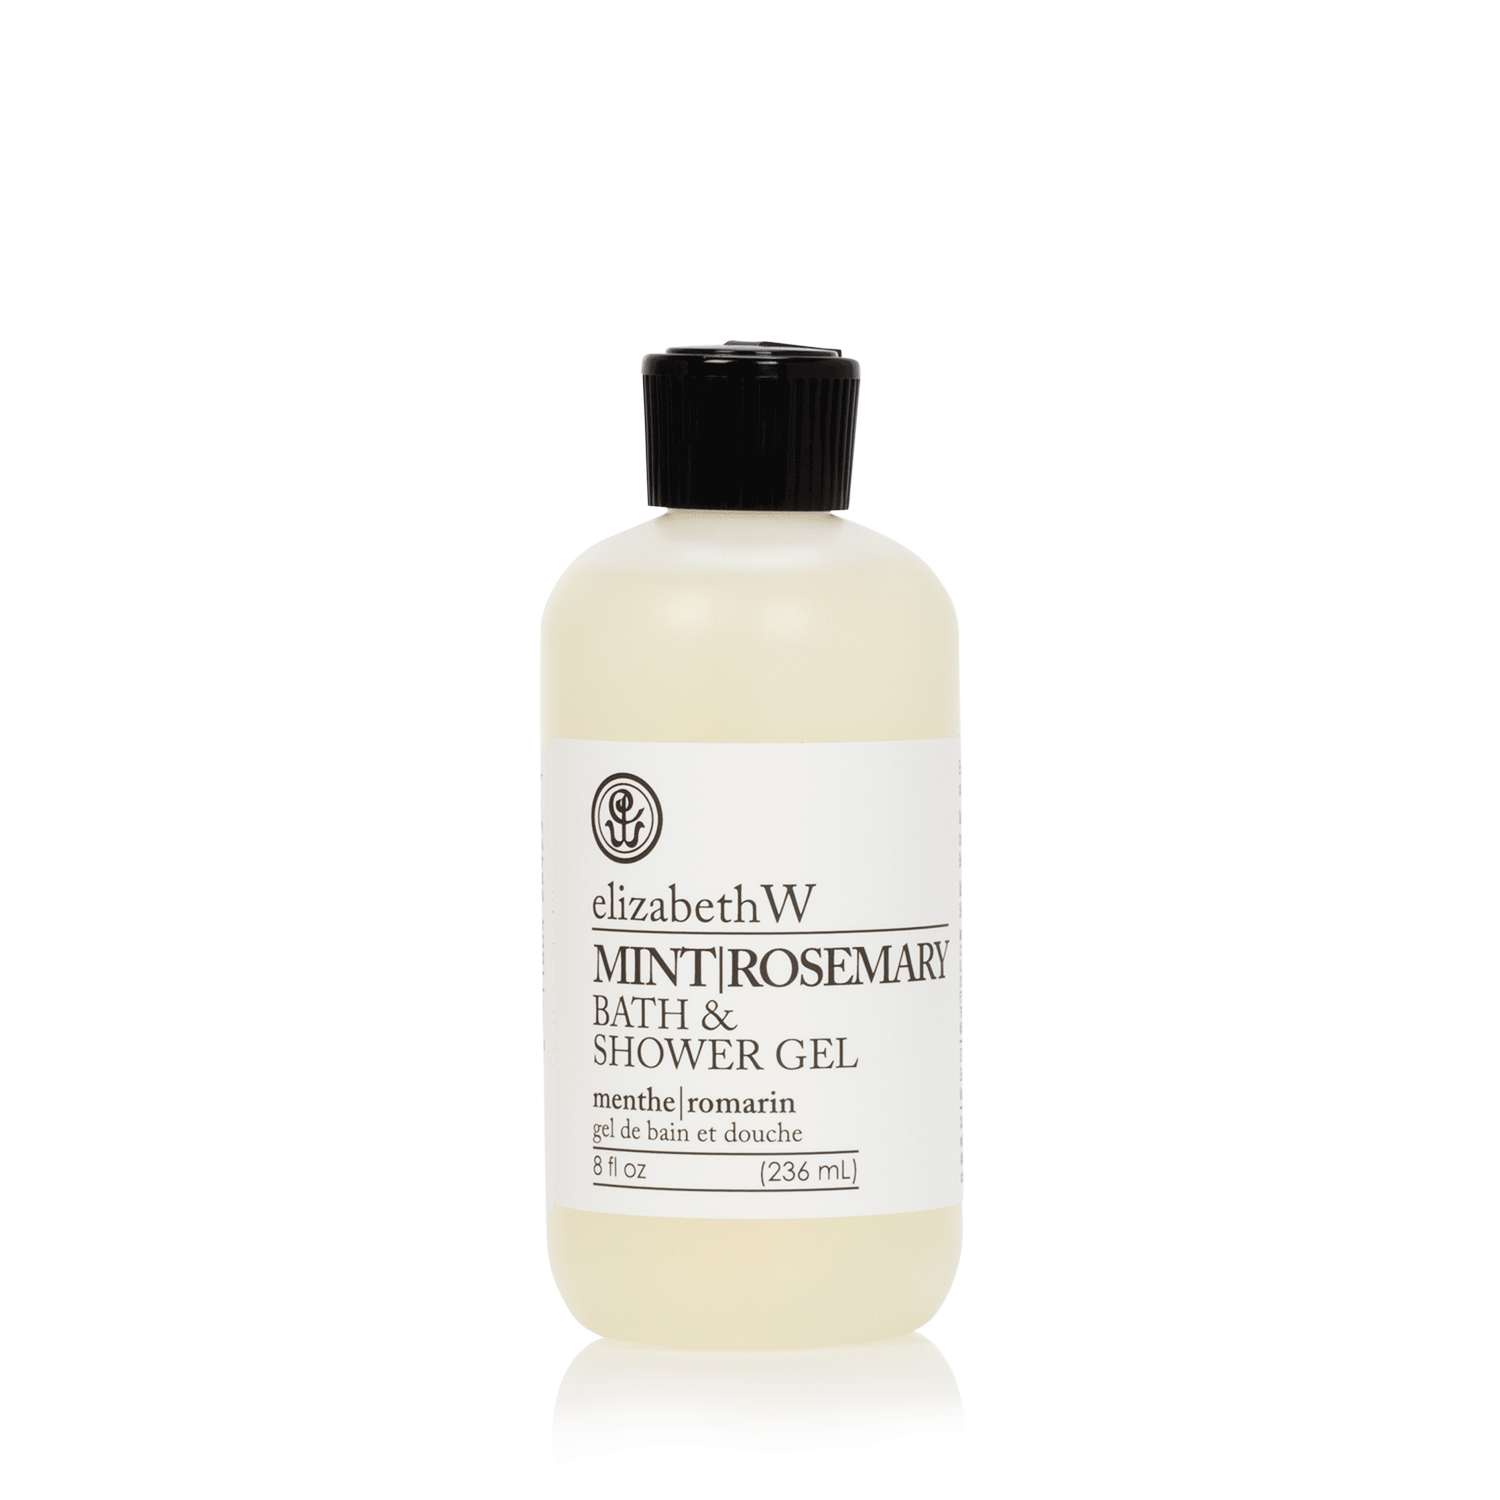 Mint Rosemary Bath & Shower Gel